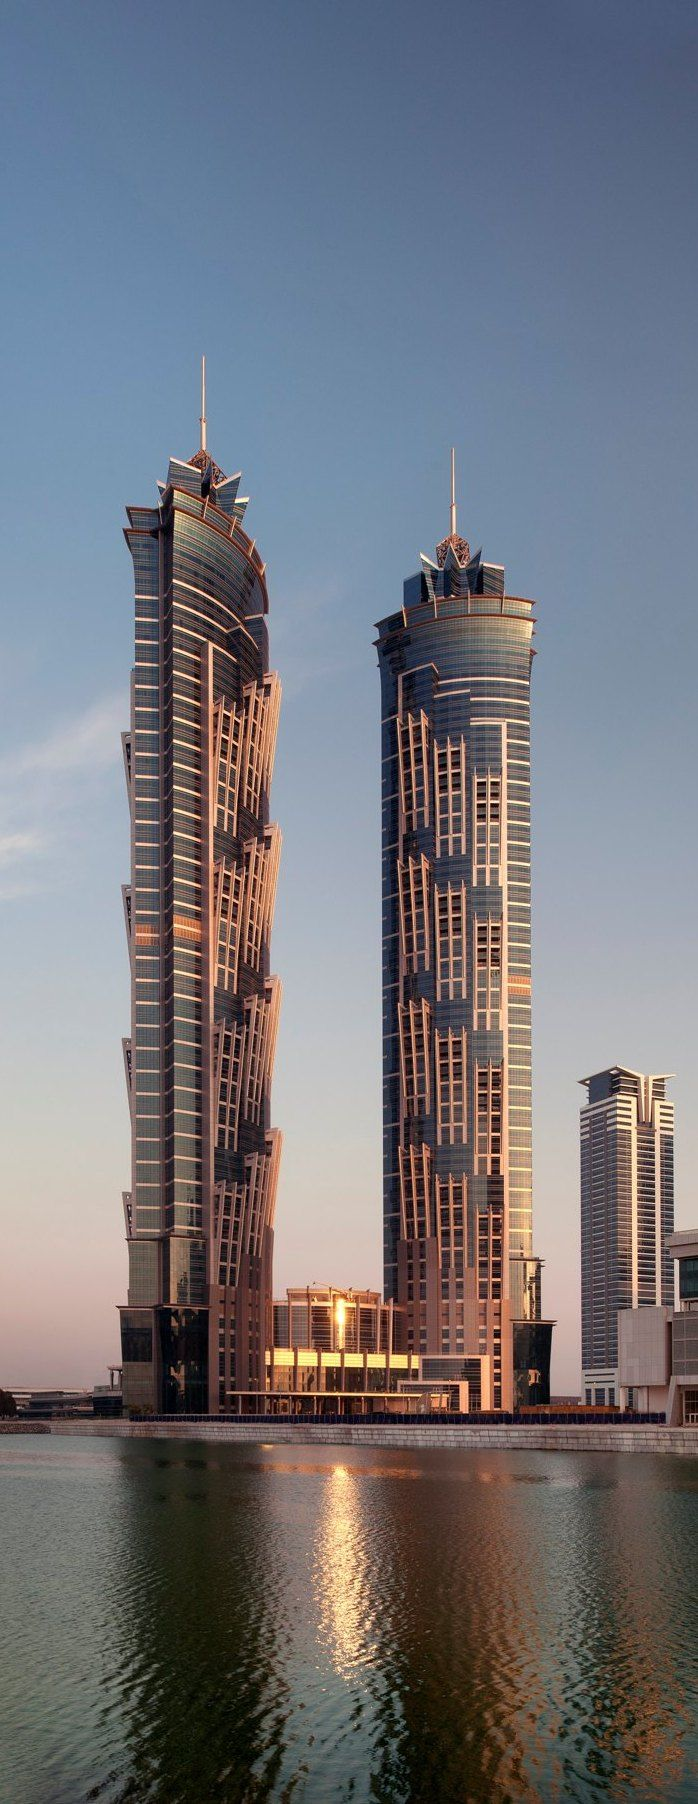 //JW Marriott Marquis Hotel Dubai, UAE by Archgroup Consultants :: 82 floors, height 355m #architecture